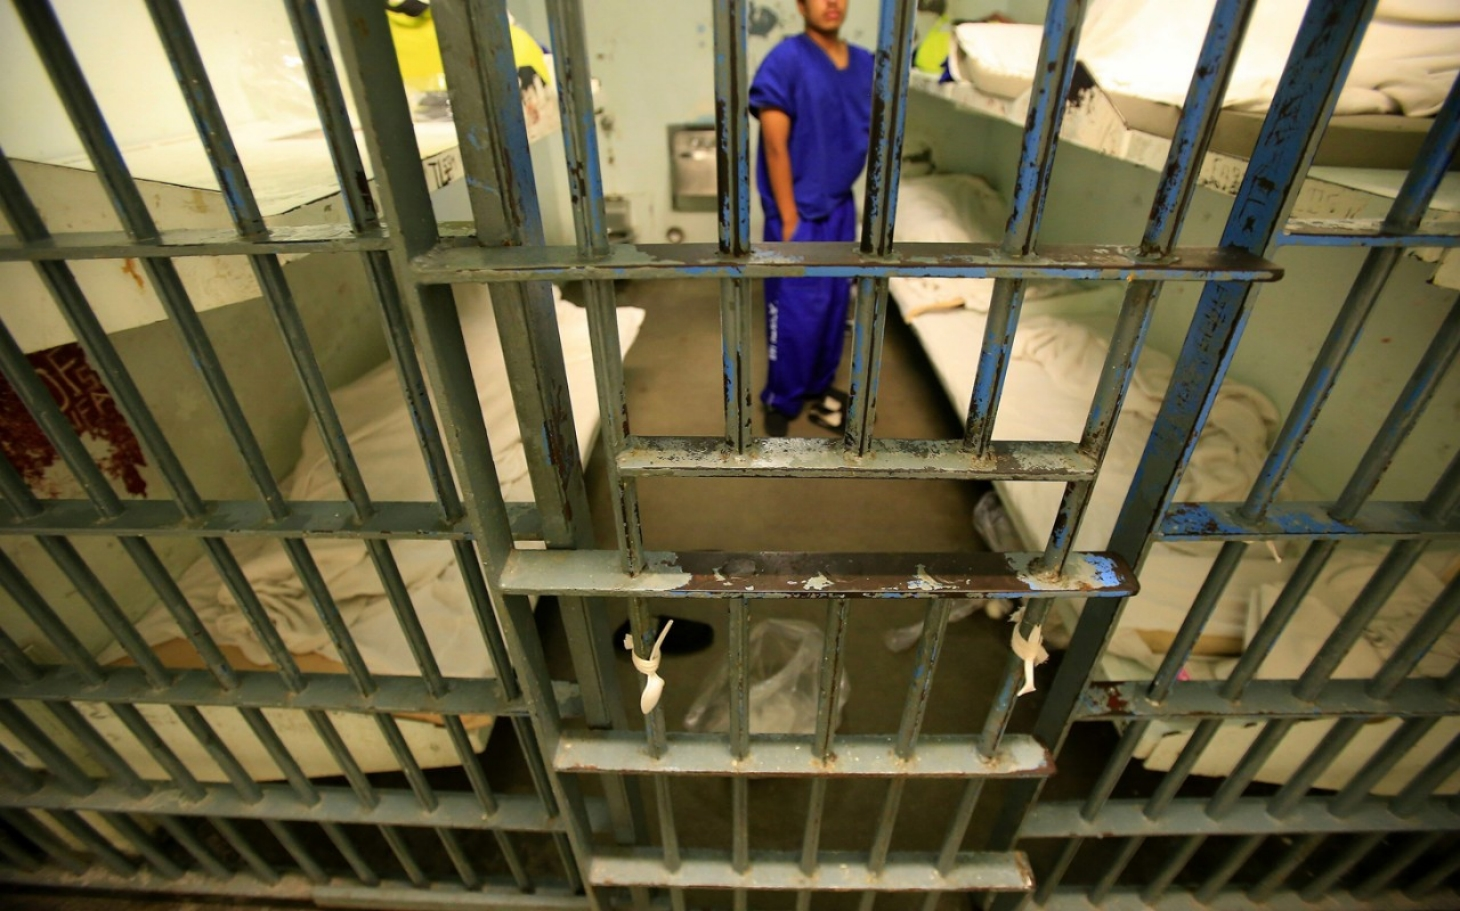 aclu: county jails people who can't pay fines | al jazeera america